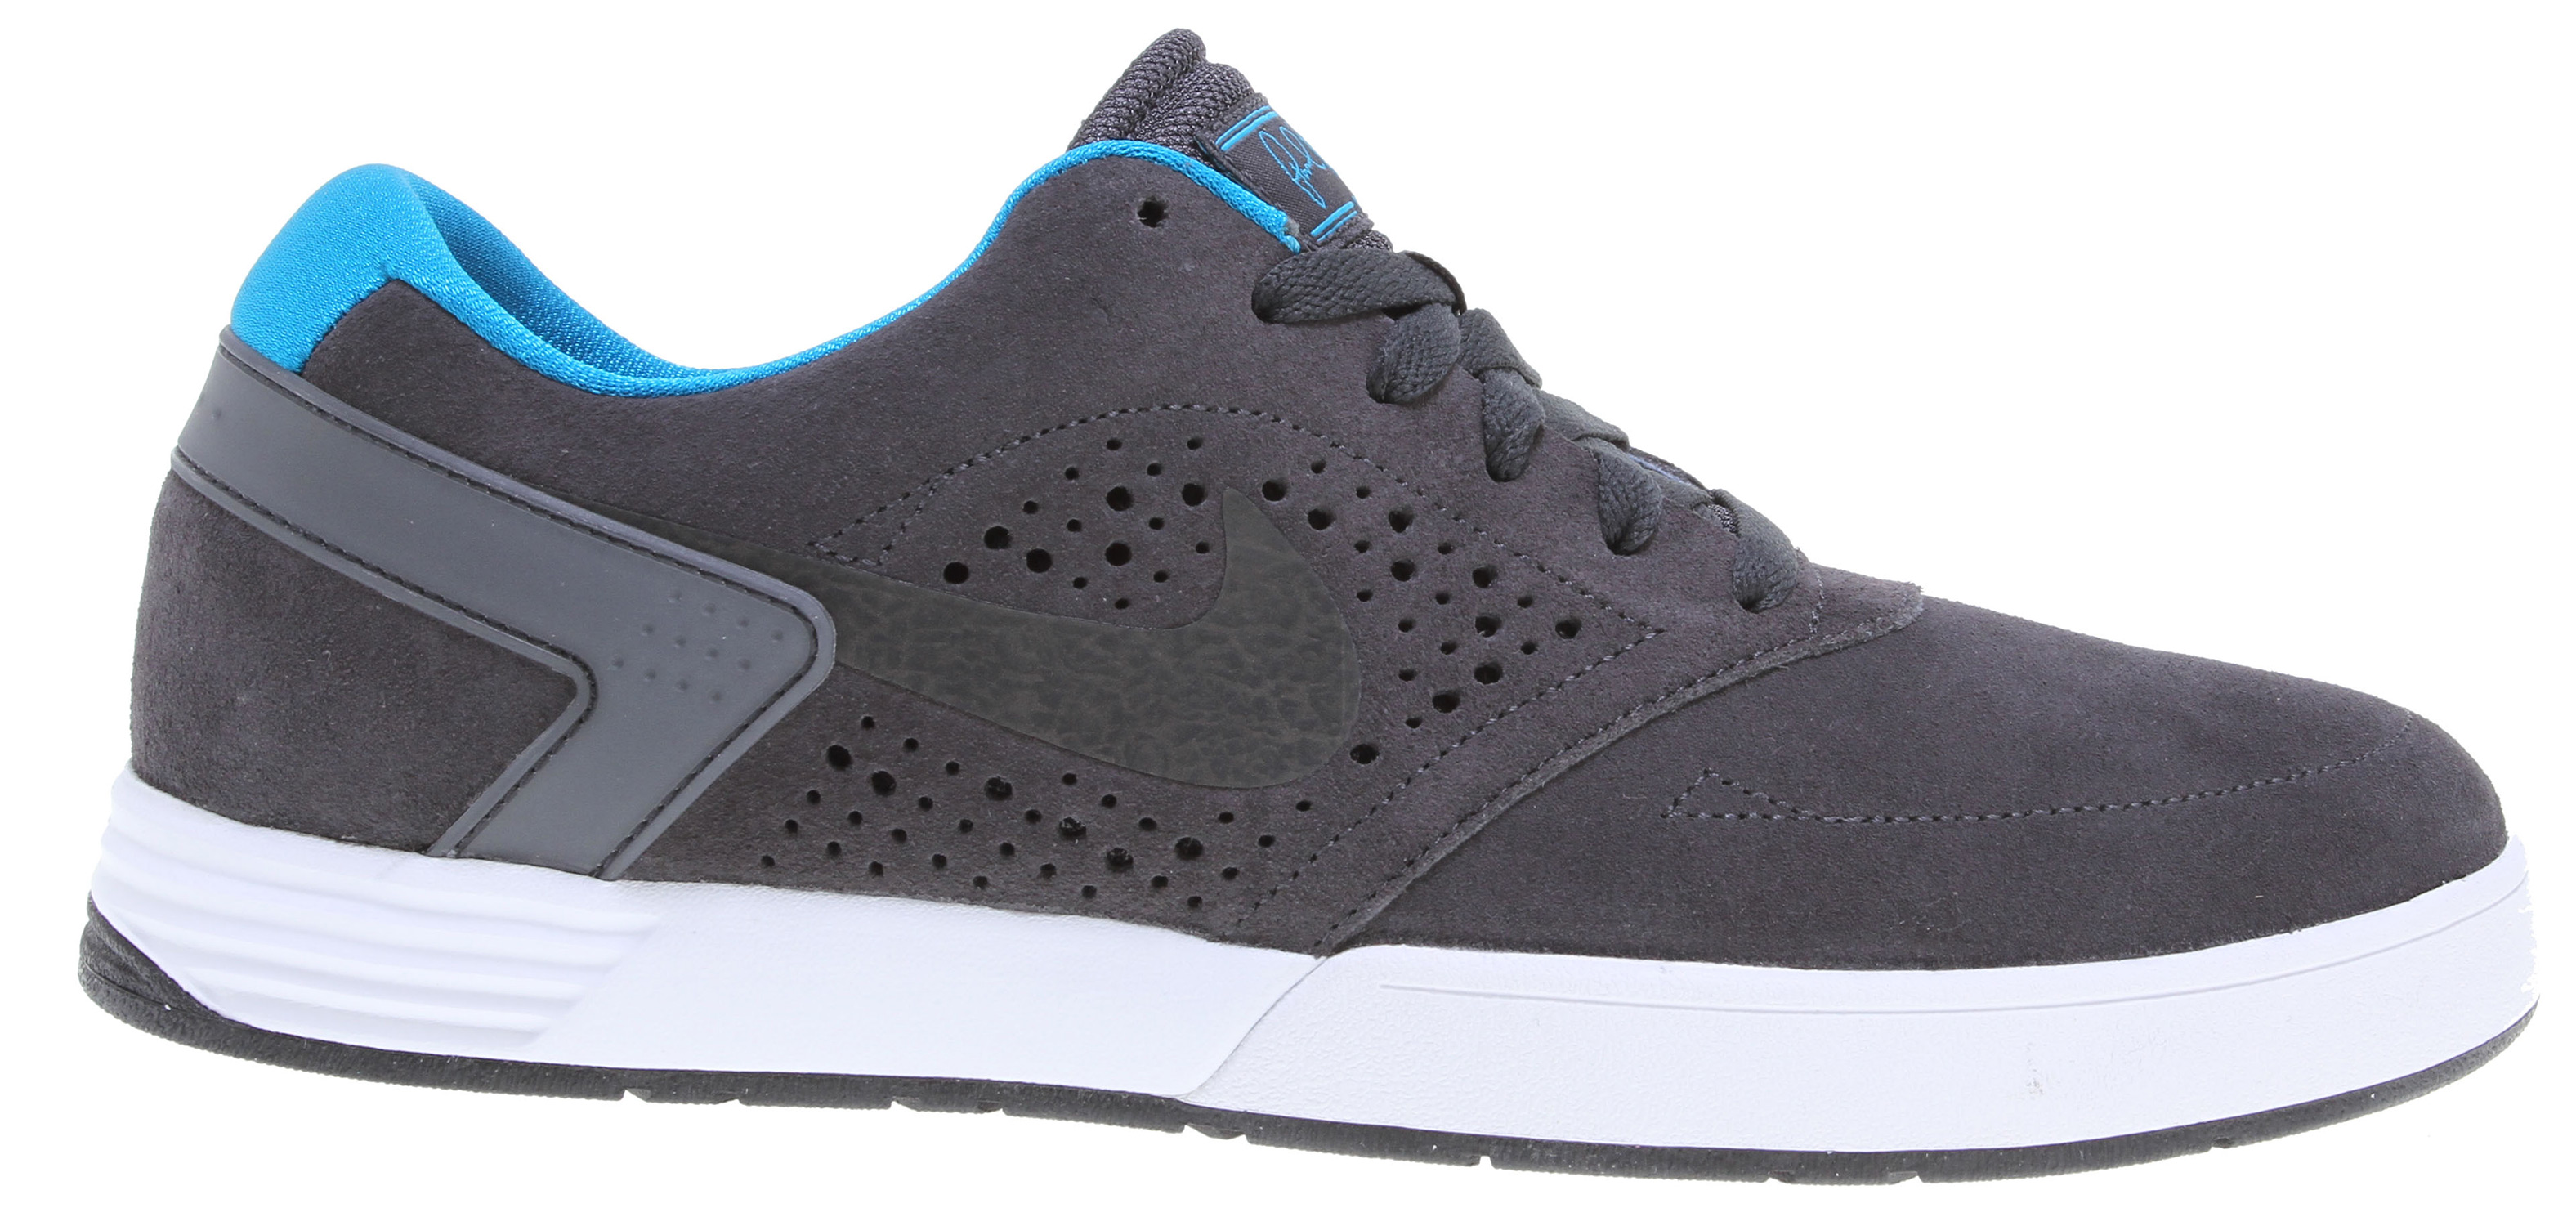 Skateboard Lightweight, breathable protection, merged with Nike innovation to create the perfect low-top skate silhouette. Key Features of the Nike Paul Rodriguez 6 Skate Shoes: Suede/leather with increased layers. Designed for breathable protection. Lunarlon foam, encased in a Phylon midsole, provide the ultimate lightweight cushioning. Decreased usage of rubber, combined with a razor herringbone tread pattern, provide flexibility and traction. - $90.00